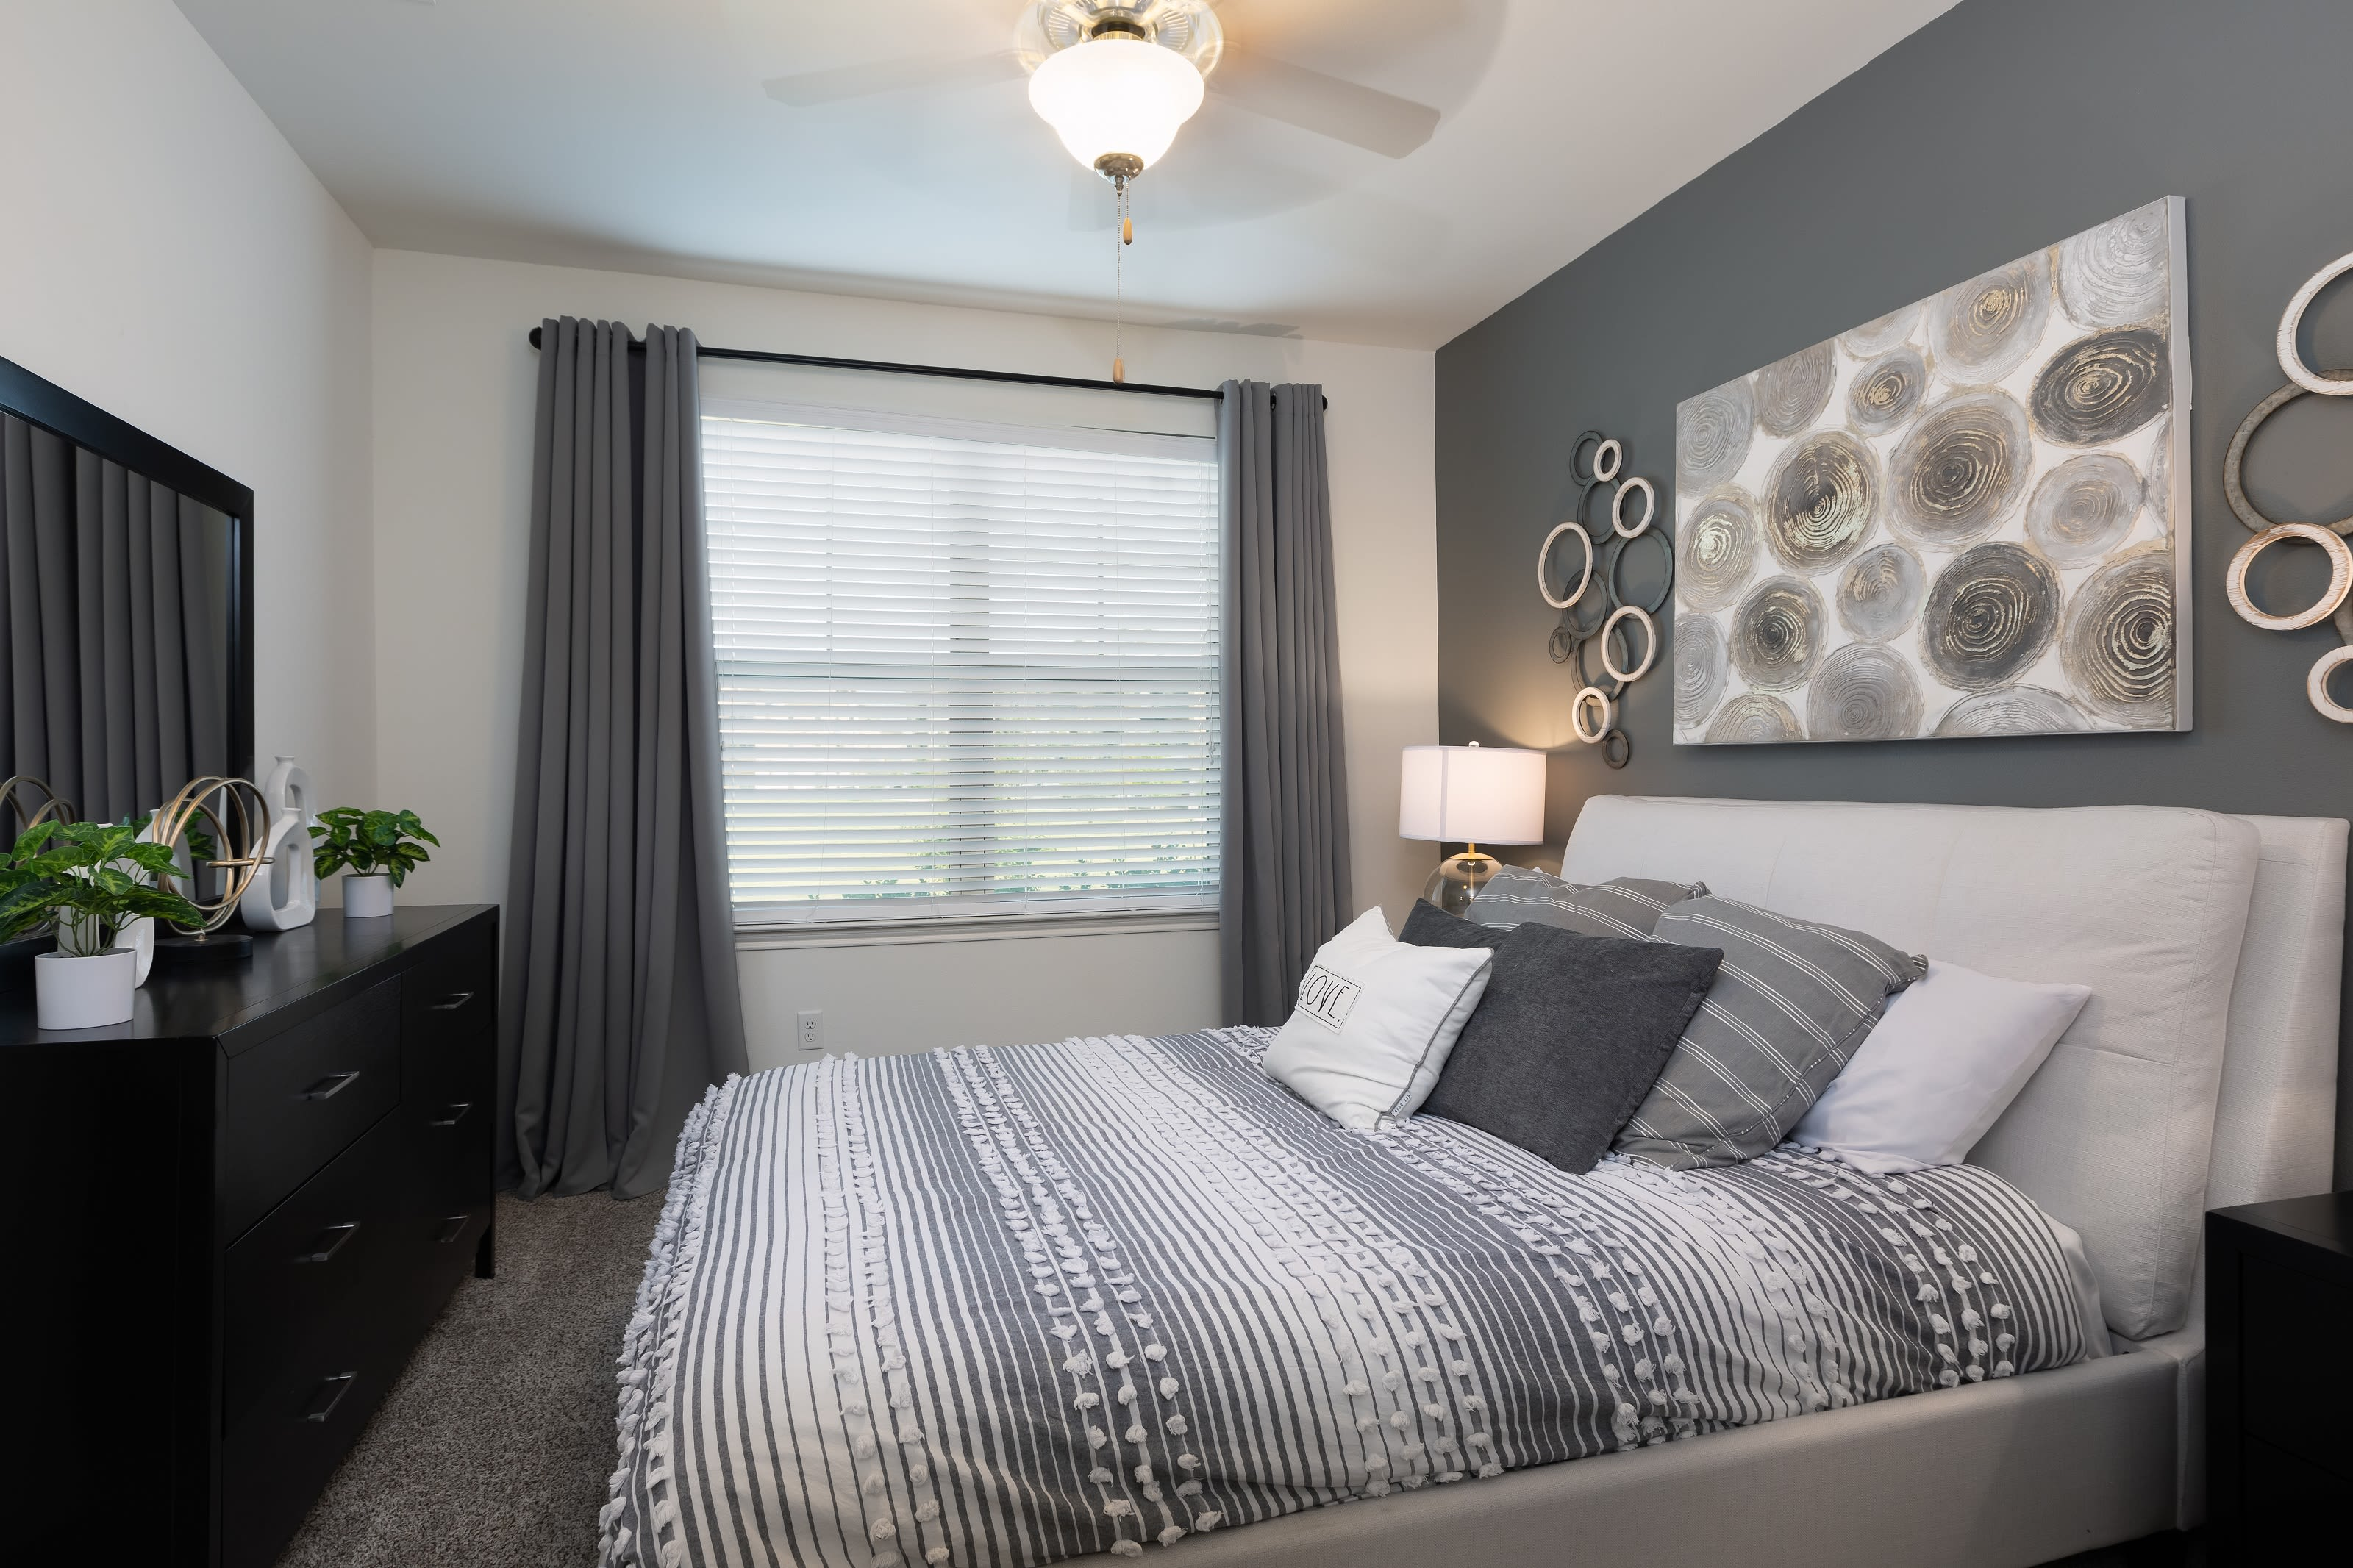 A furnished bedroom in a model apartment at 4 Corners Apartments in Frisco, Texas